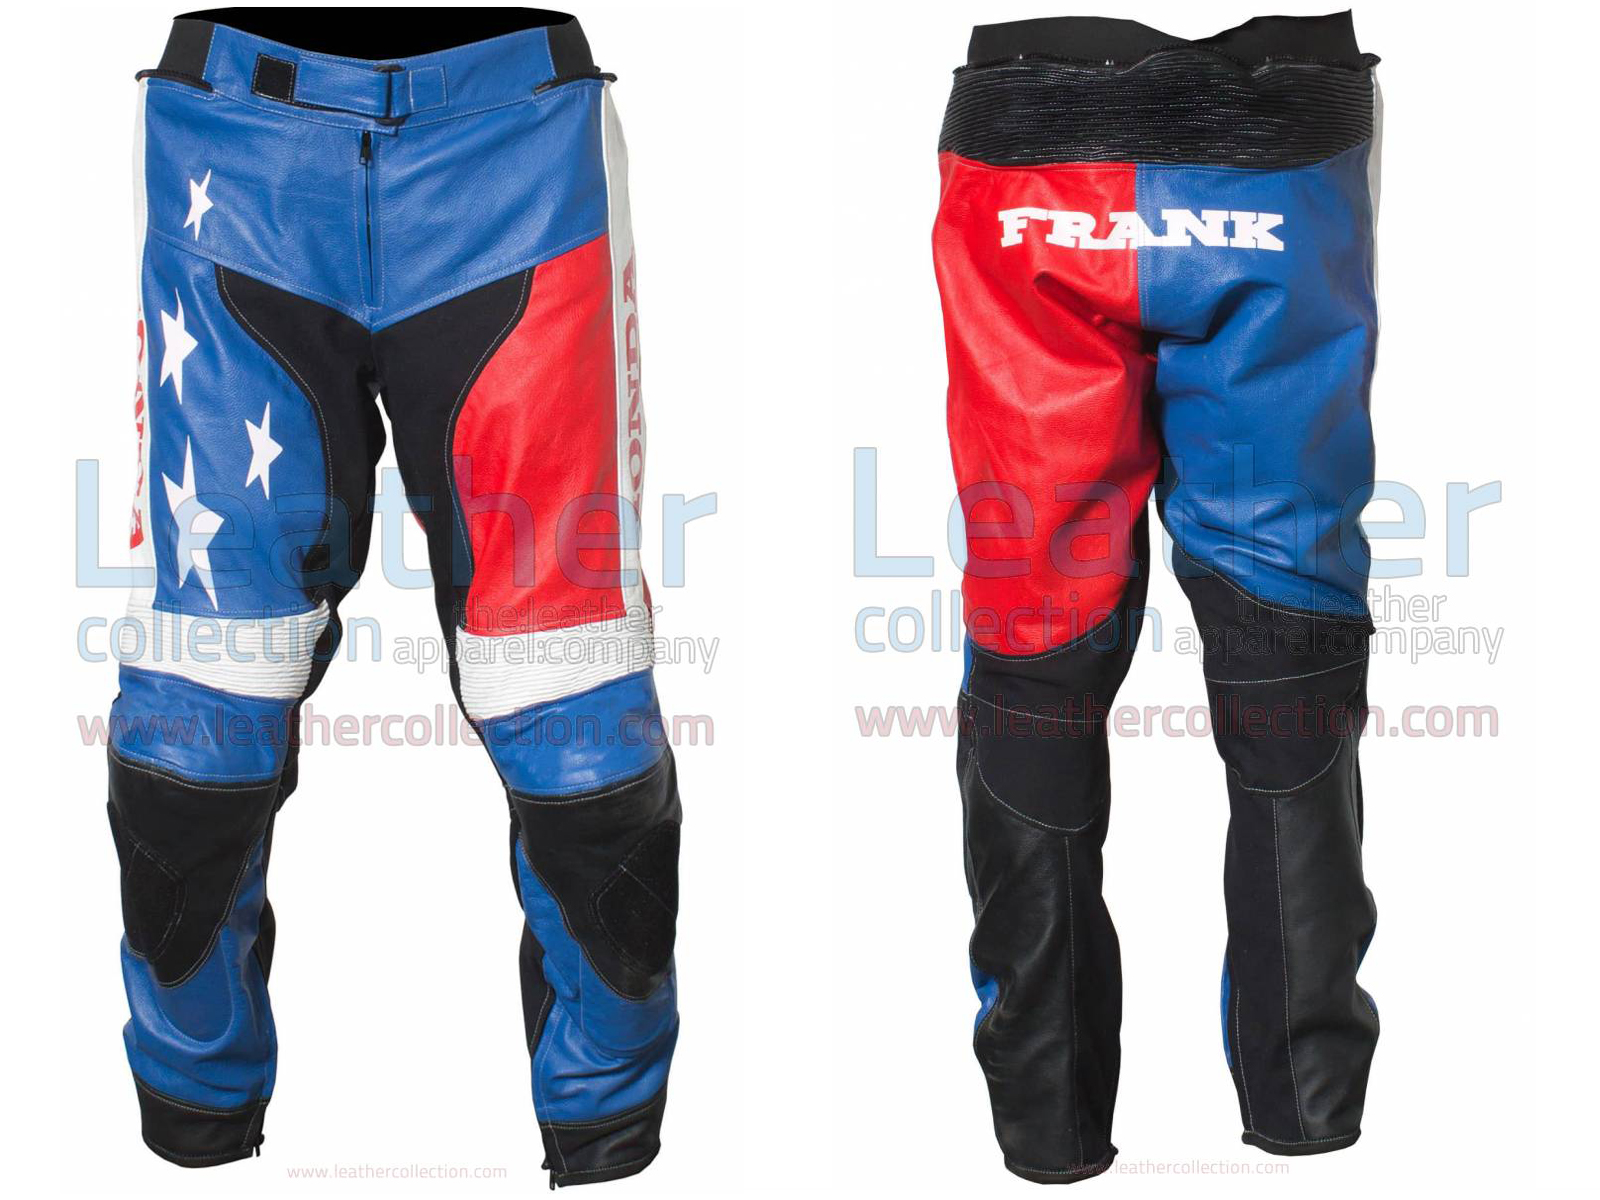 American Honda Moto2 Moriwaki MD600 Leather Pants